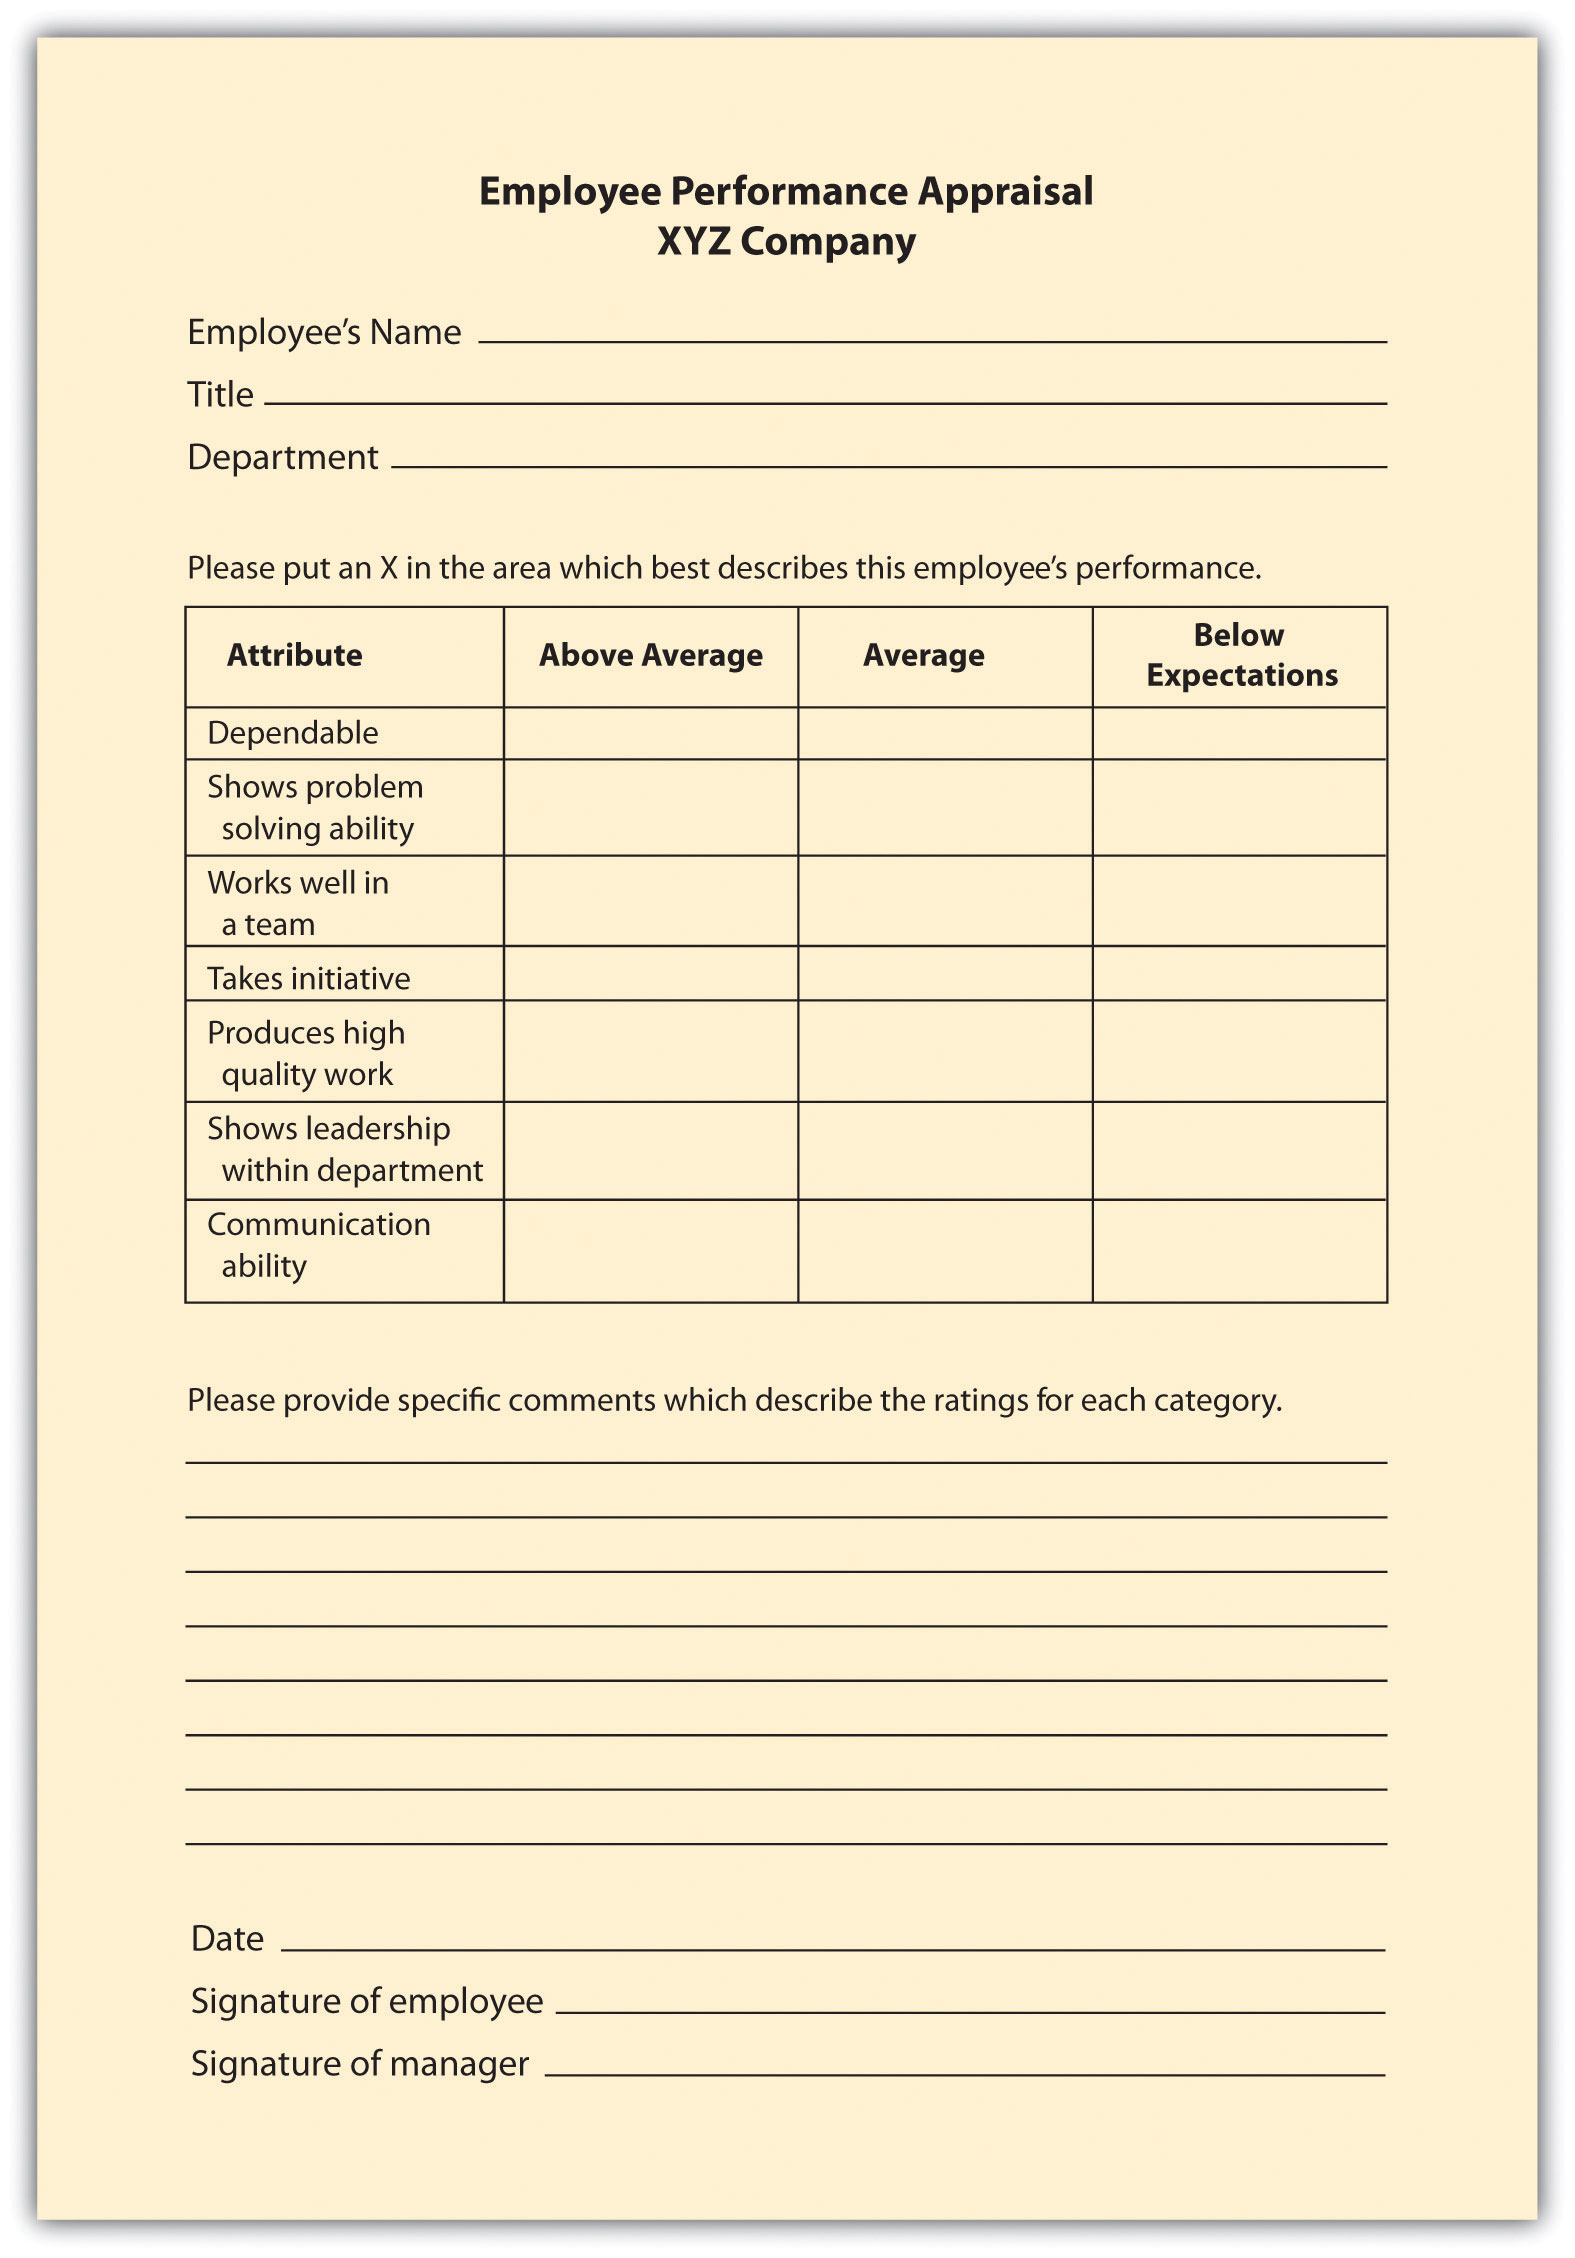 Graphic Rating Scale Performance Appraisal Method